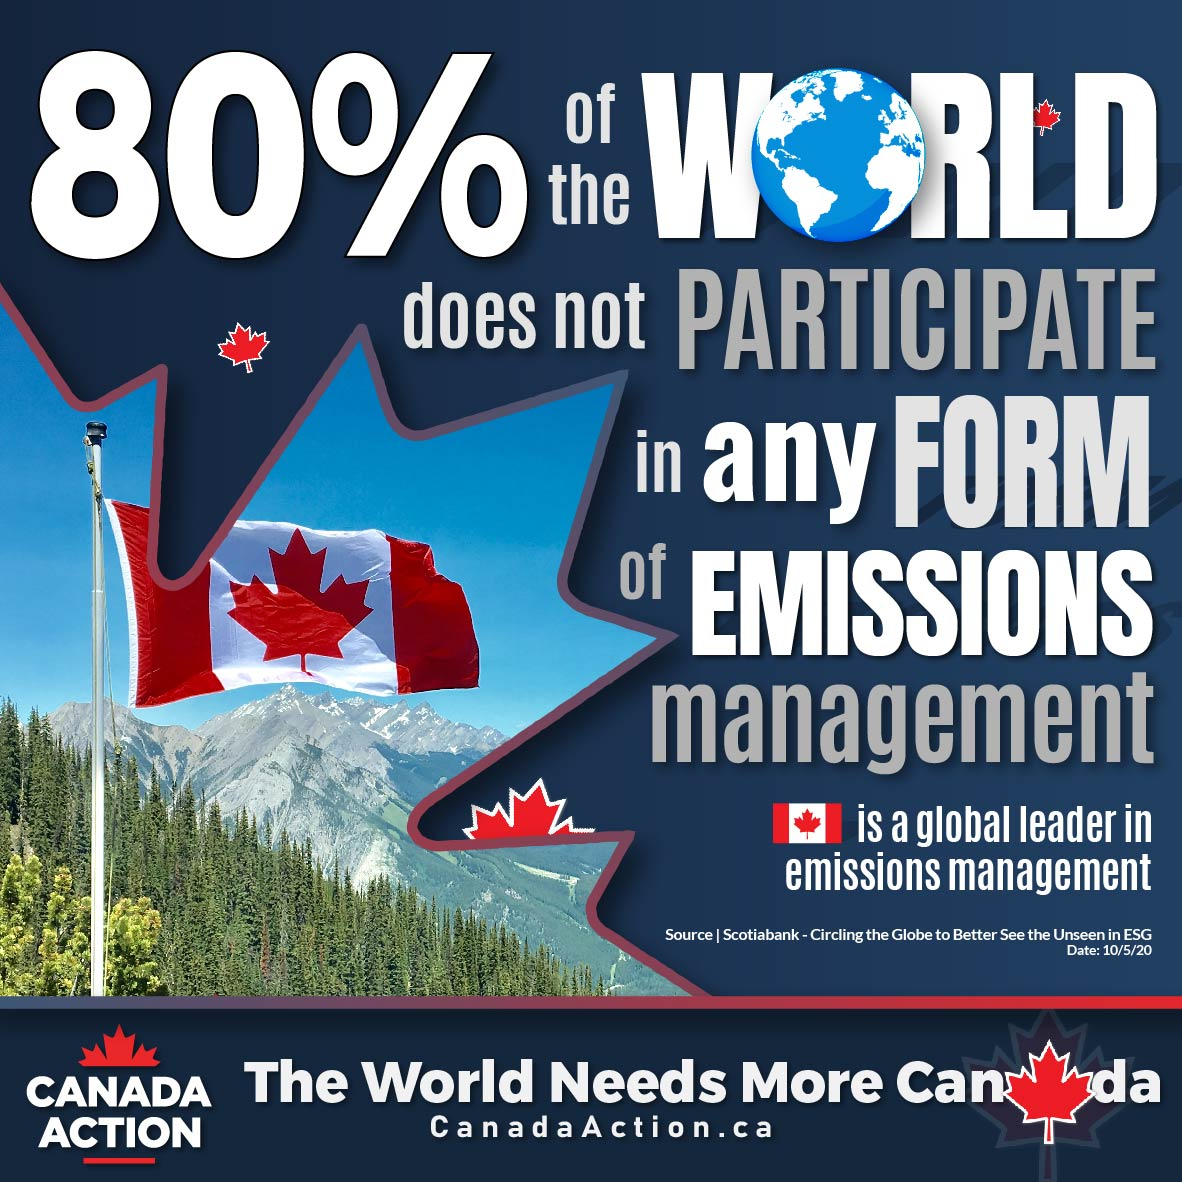 80% of the World Does Not Participate in any form of Emissions Management